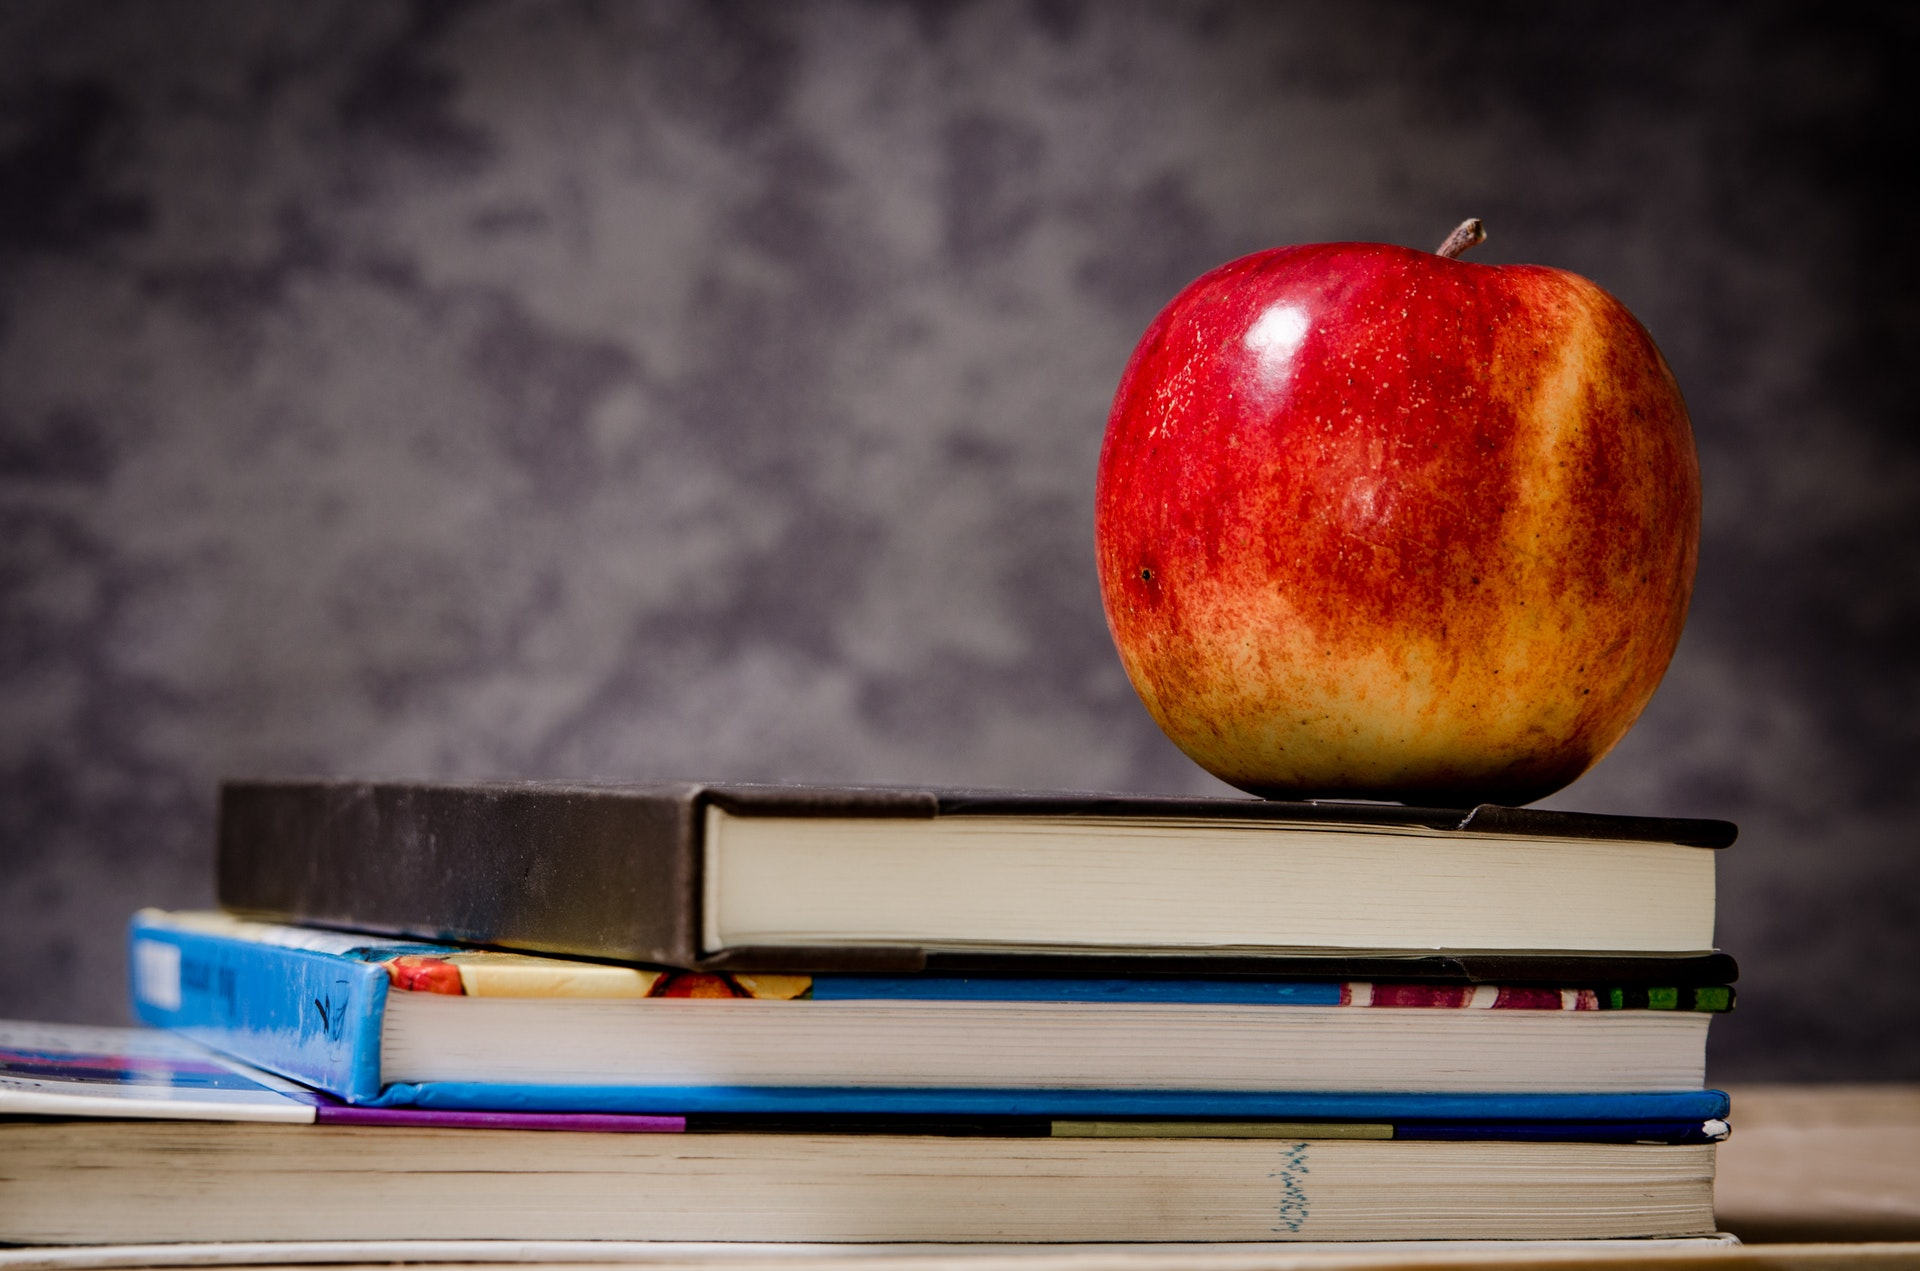 close-up-of-apple-on-top-of-books-256520_hd